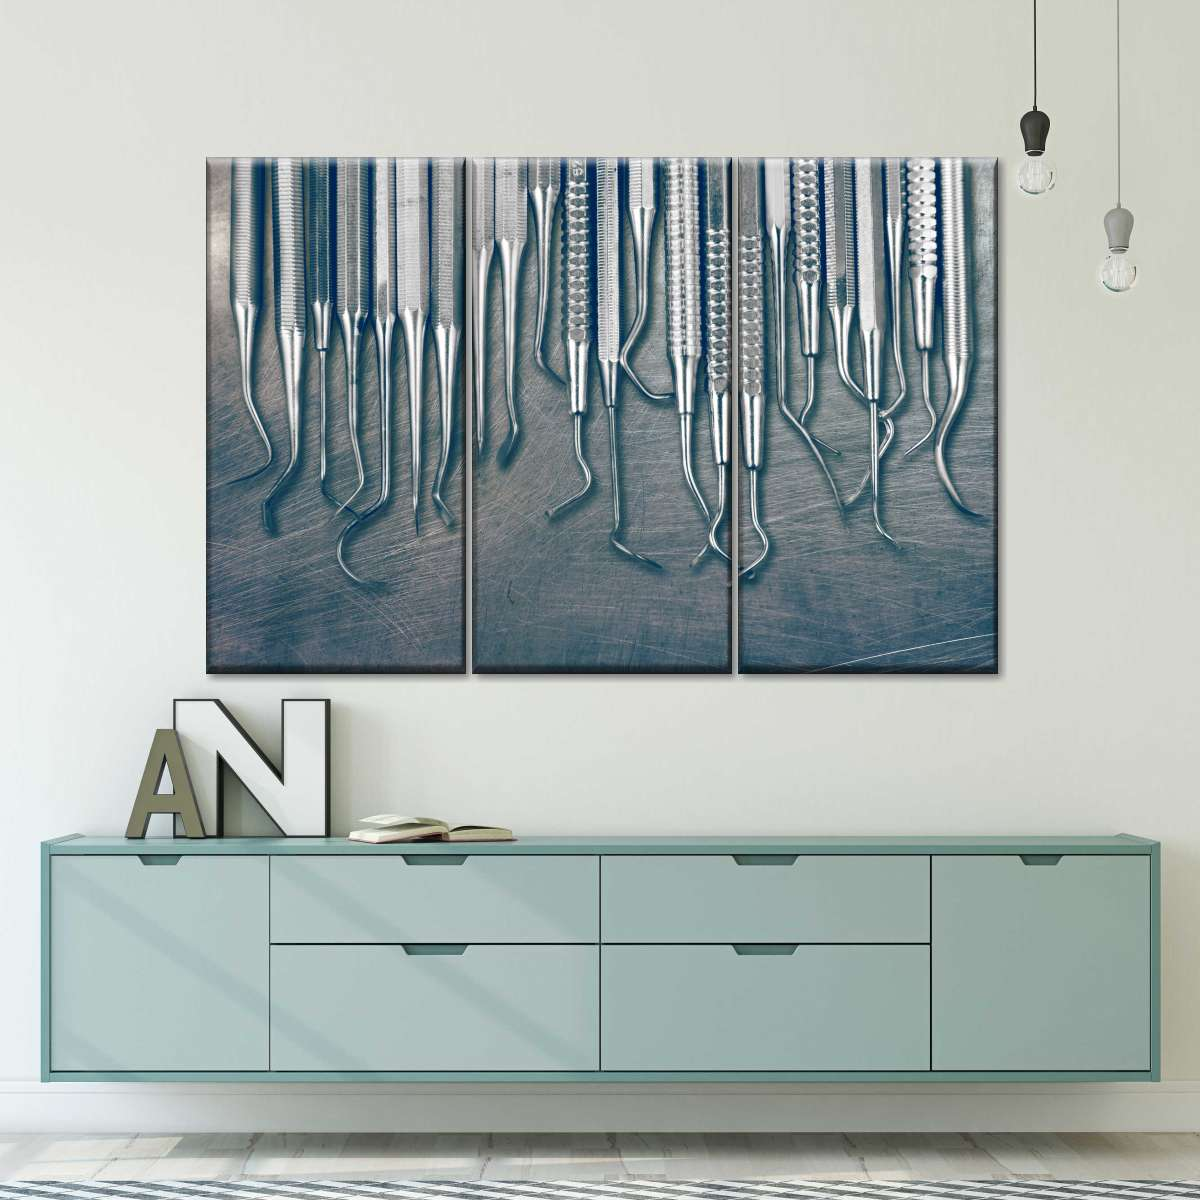 Titanium Dental Tools Multi Panel Canvas Wall Art